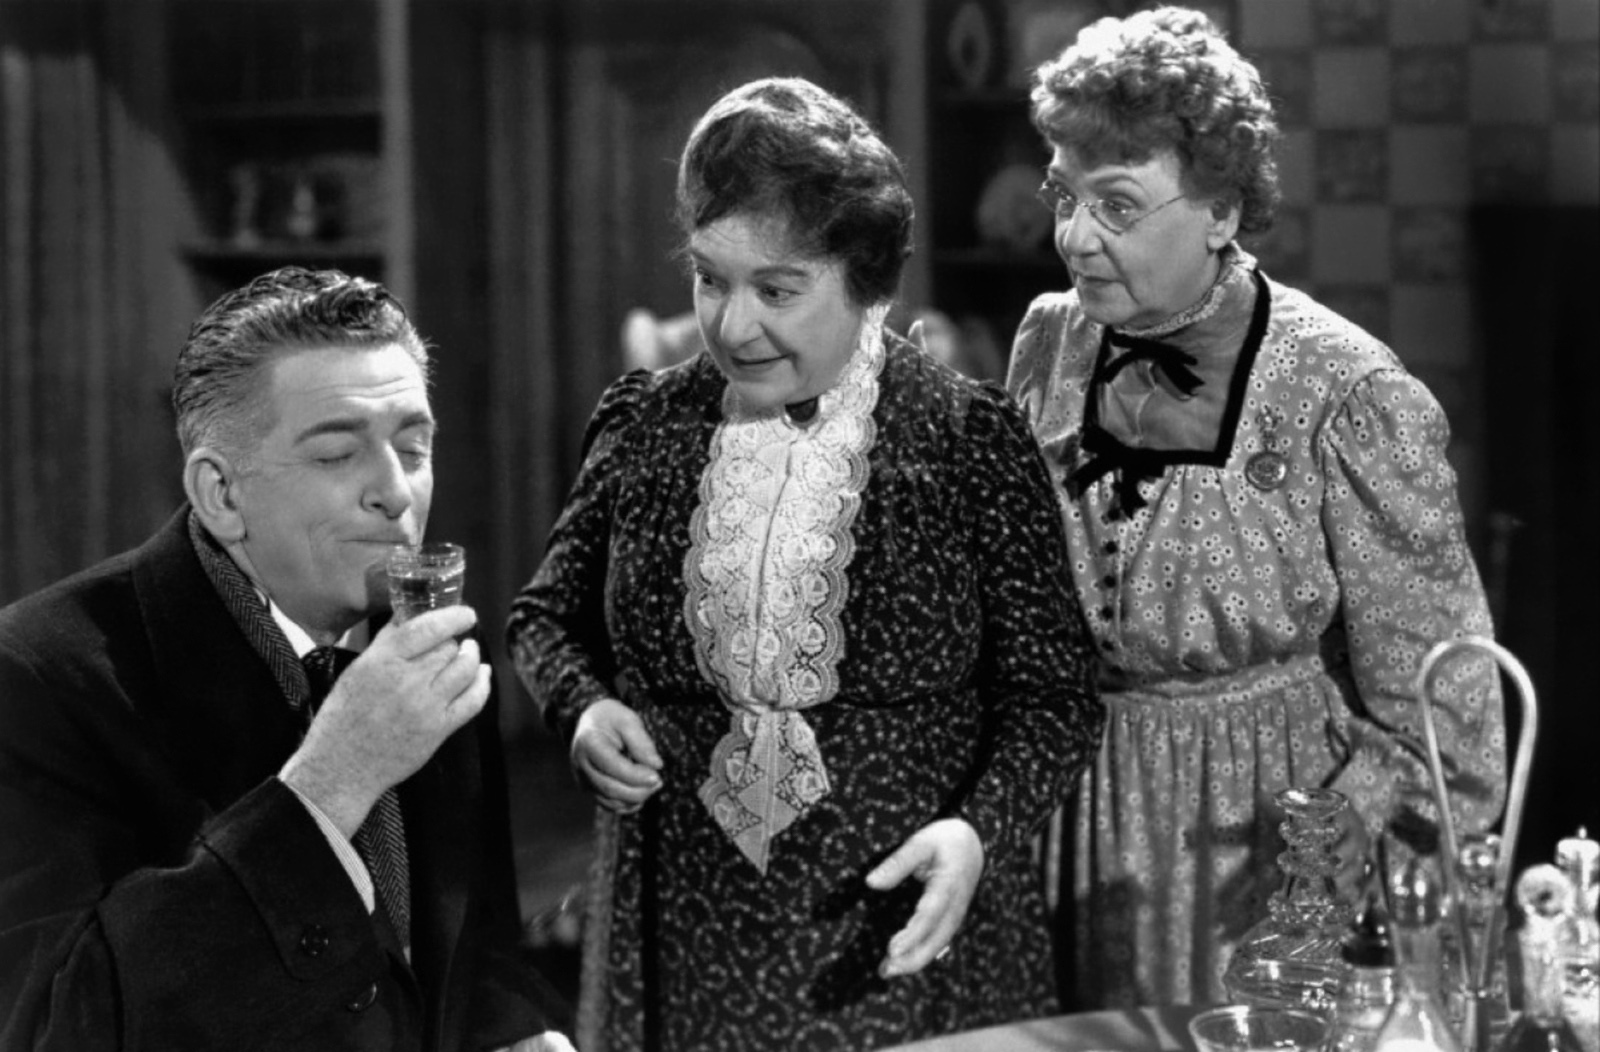 """The Shadow in Film: Abby and Martha Brewster, Arsenic & Old Lace. In this 1944 dark comedy, two elderly sisters are homebodies who have developed the """"very bad habit"""" of ending the presumed suffering of lonely old bachelors by serving them elderberry wine laced with arsenic. In this case, the two sisters value home life and solitude, but they are so anti-social and out of touch with human feelings that they display psychopathic behavior."""